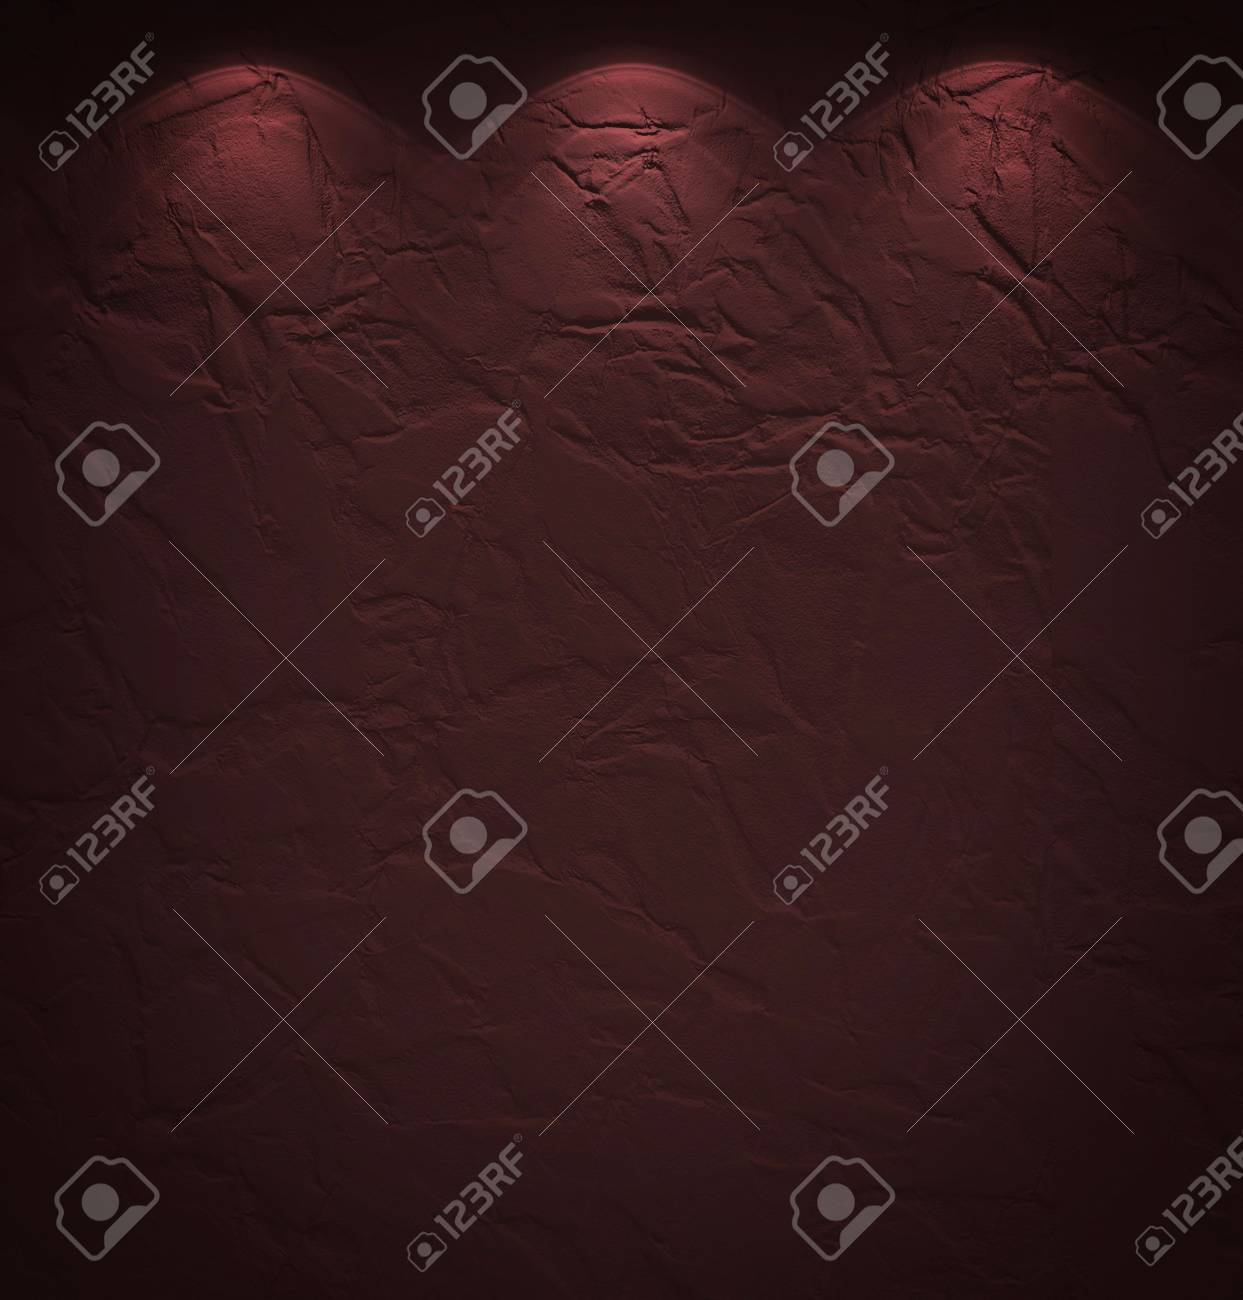 Illuminated texture of the brown wall Stock Photo - 14096492